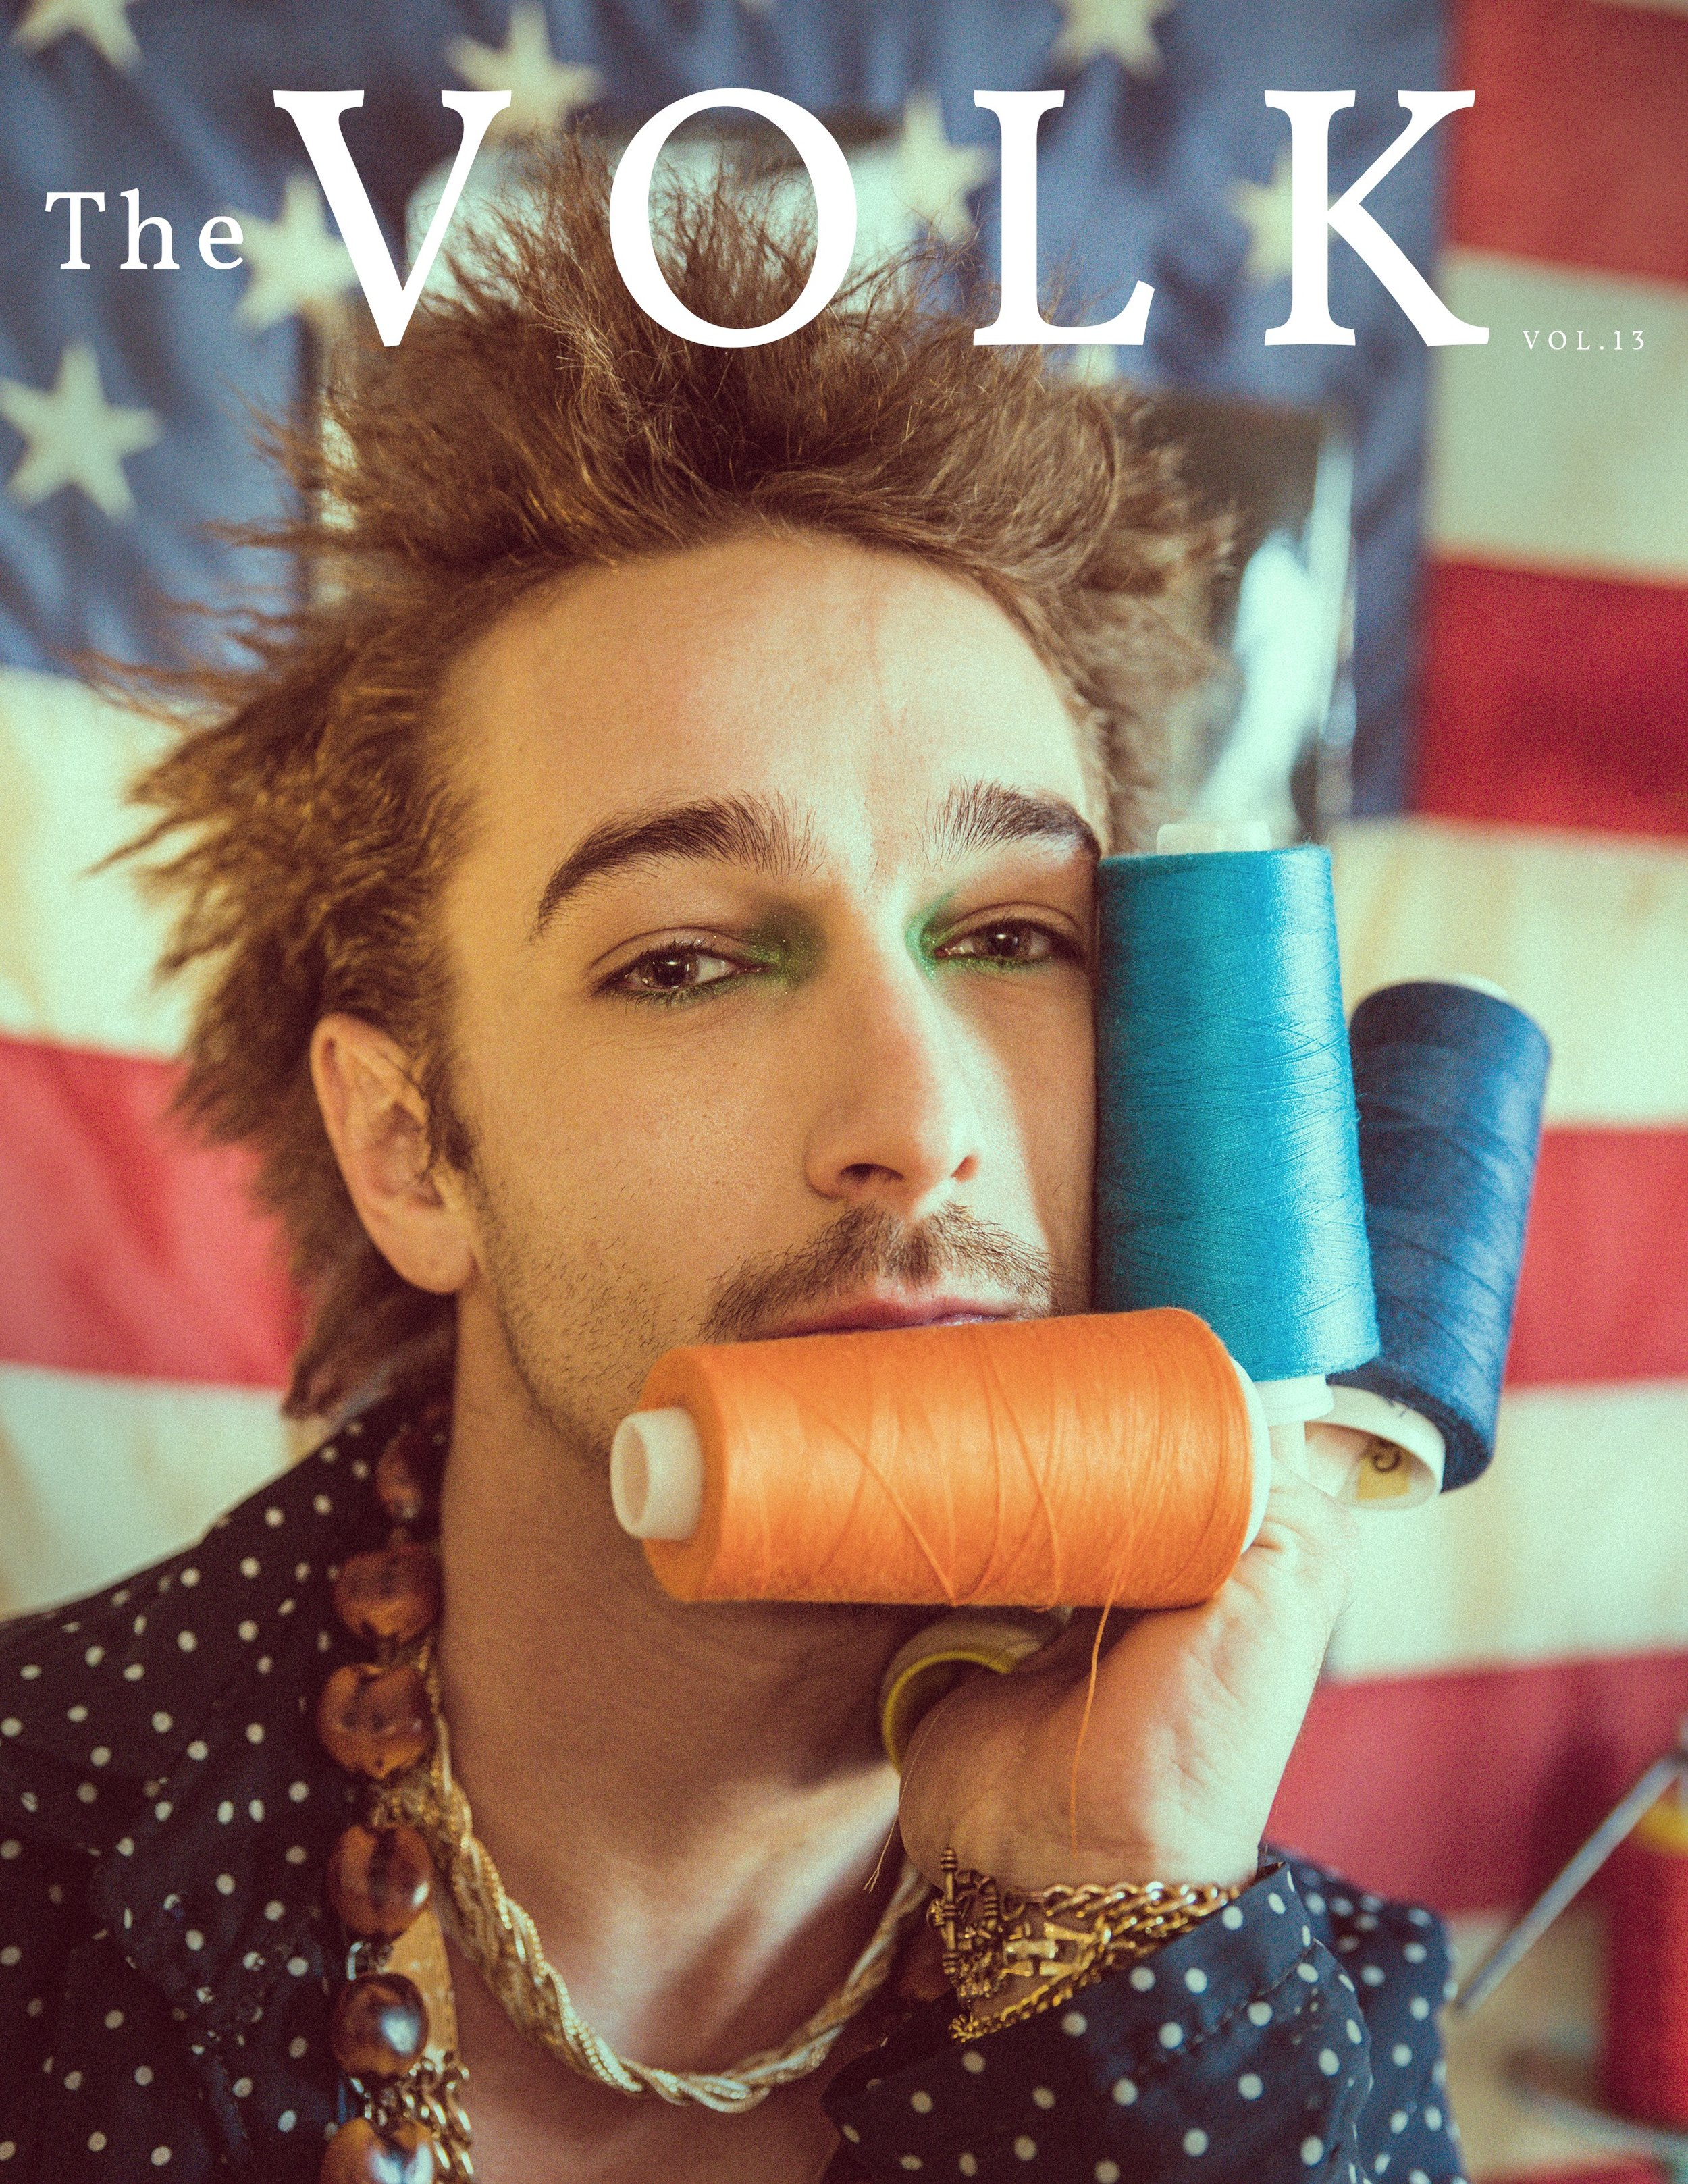 Available Now! - Cool, collective and extremely creative is what the summer of 2019 is looking like for The Volk. Featuring cover guy, Coty Schooley, owner and fashion designer of Coty Clothing Co, you are certain to vibe with the vibrant colors, unique patterns and out-of-the-box fashion throughout this issue.